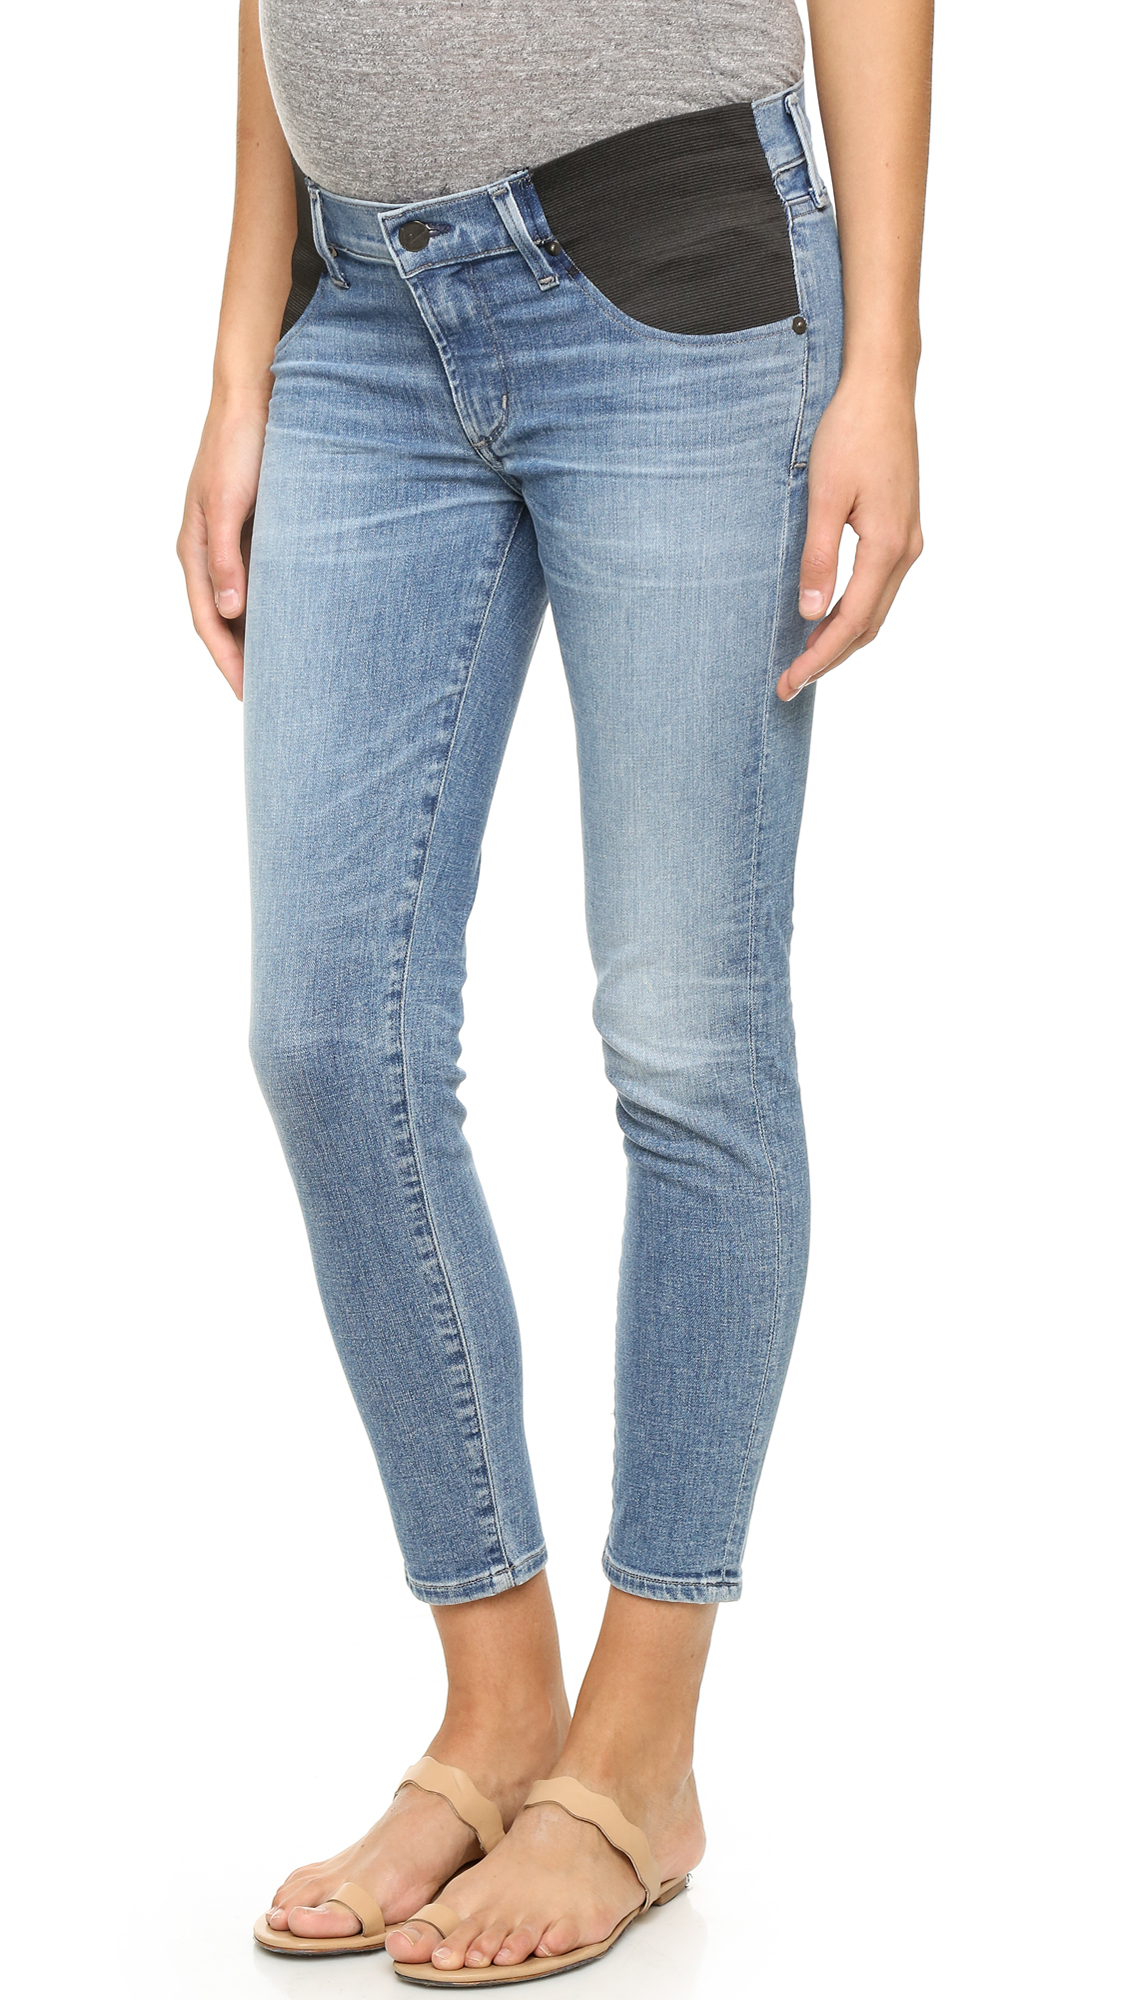 Citizens of humanity Avedon Maternity Jeans in Blue | Lyst